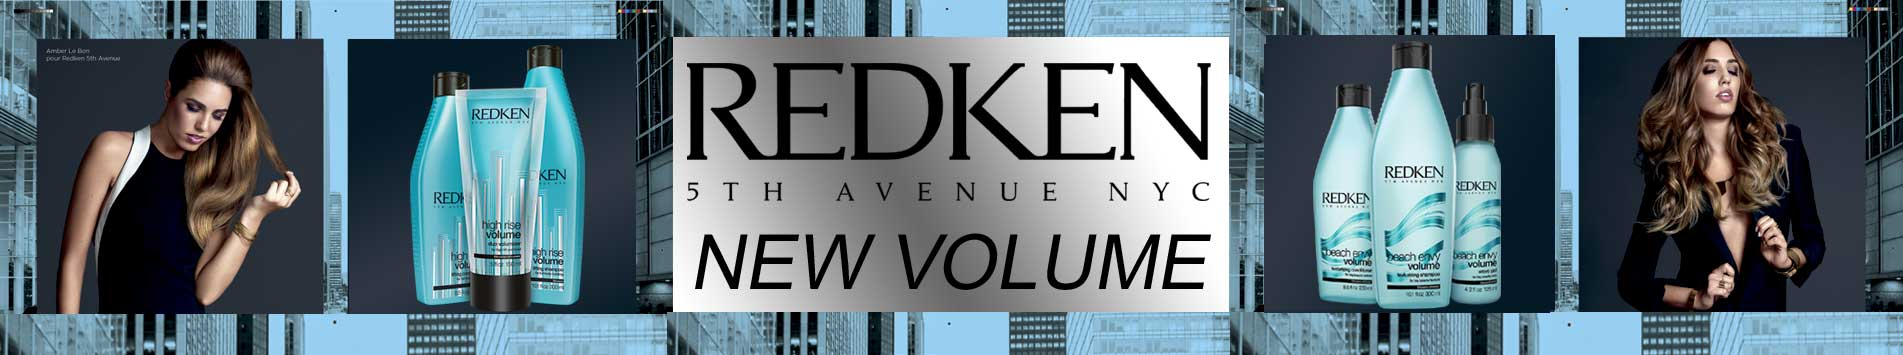 8171020redken-new-volume